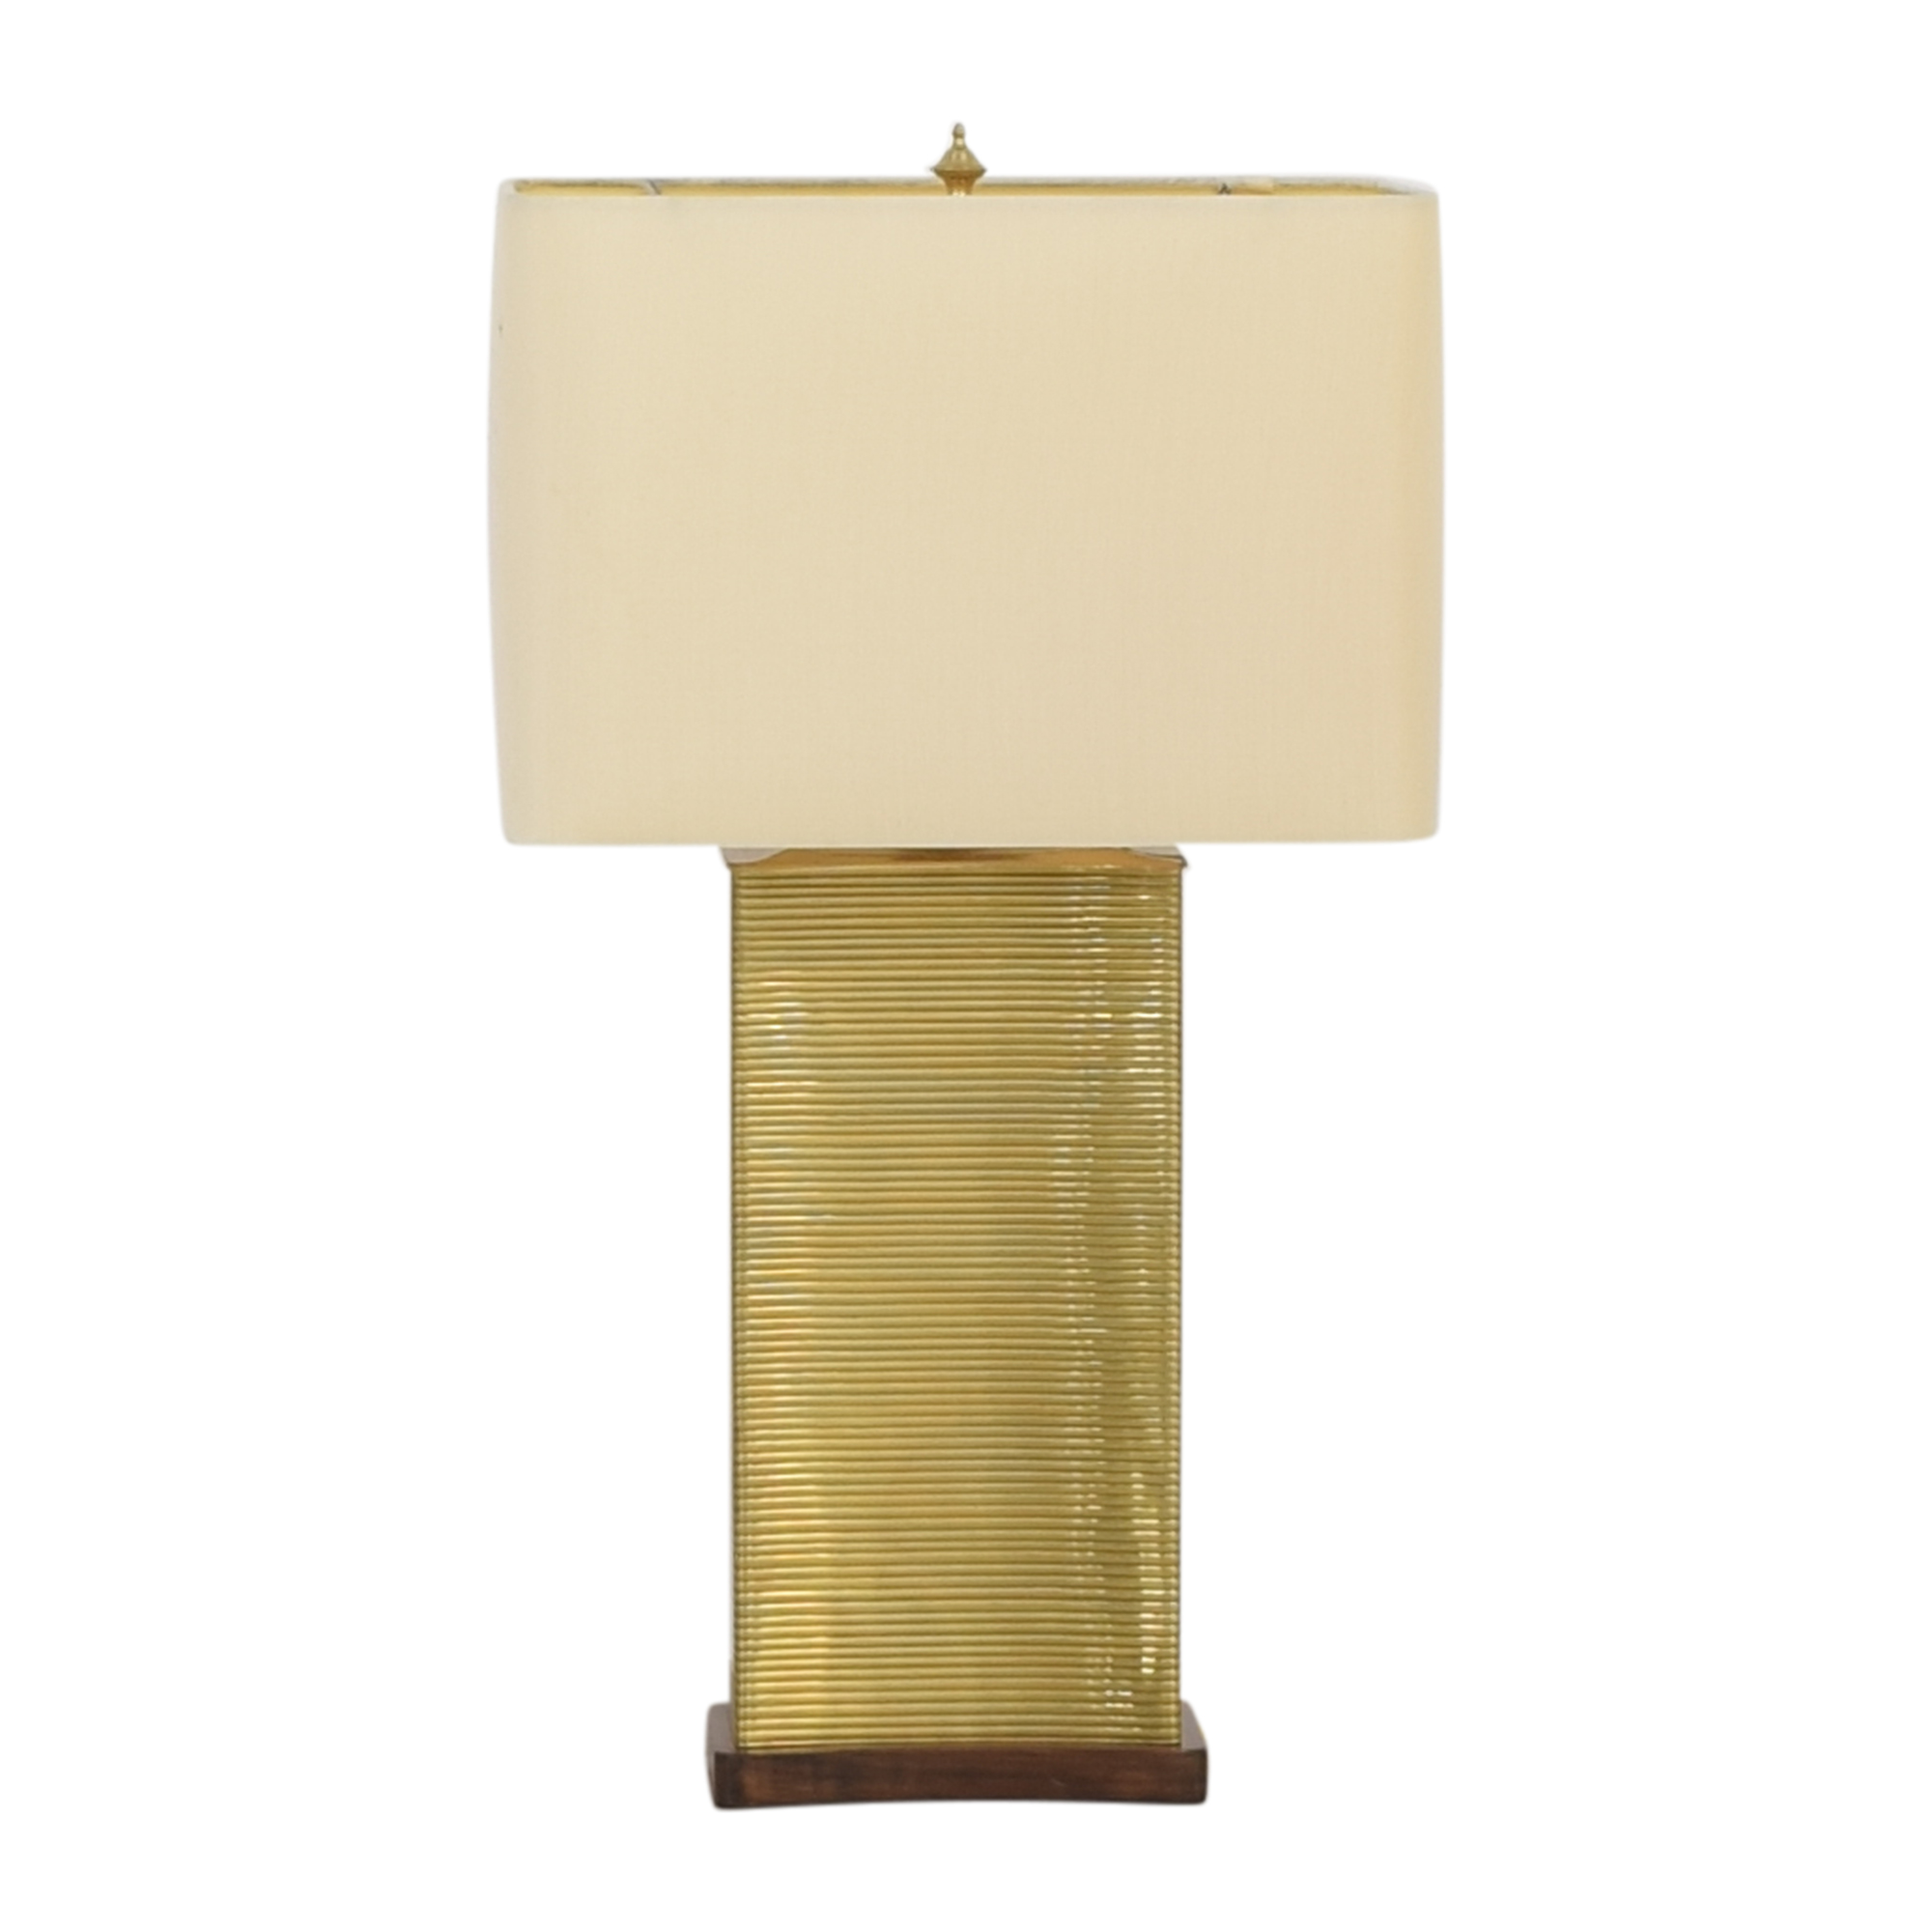 Frederick Cooper Frederick Cooper Uptown Antique Brass Table Lamp used